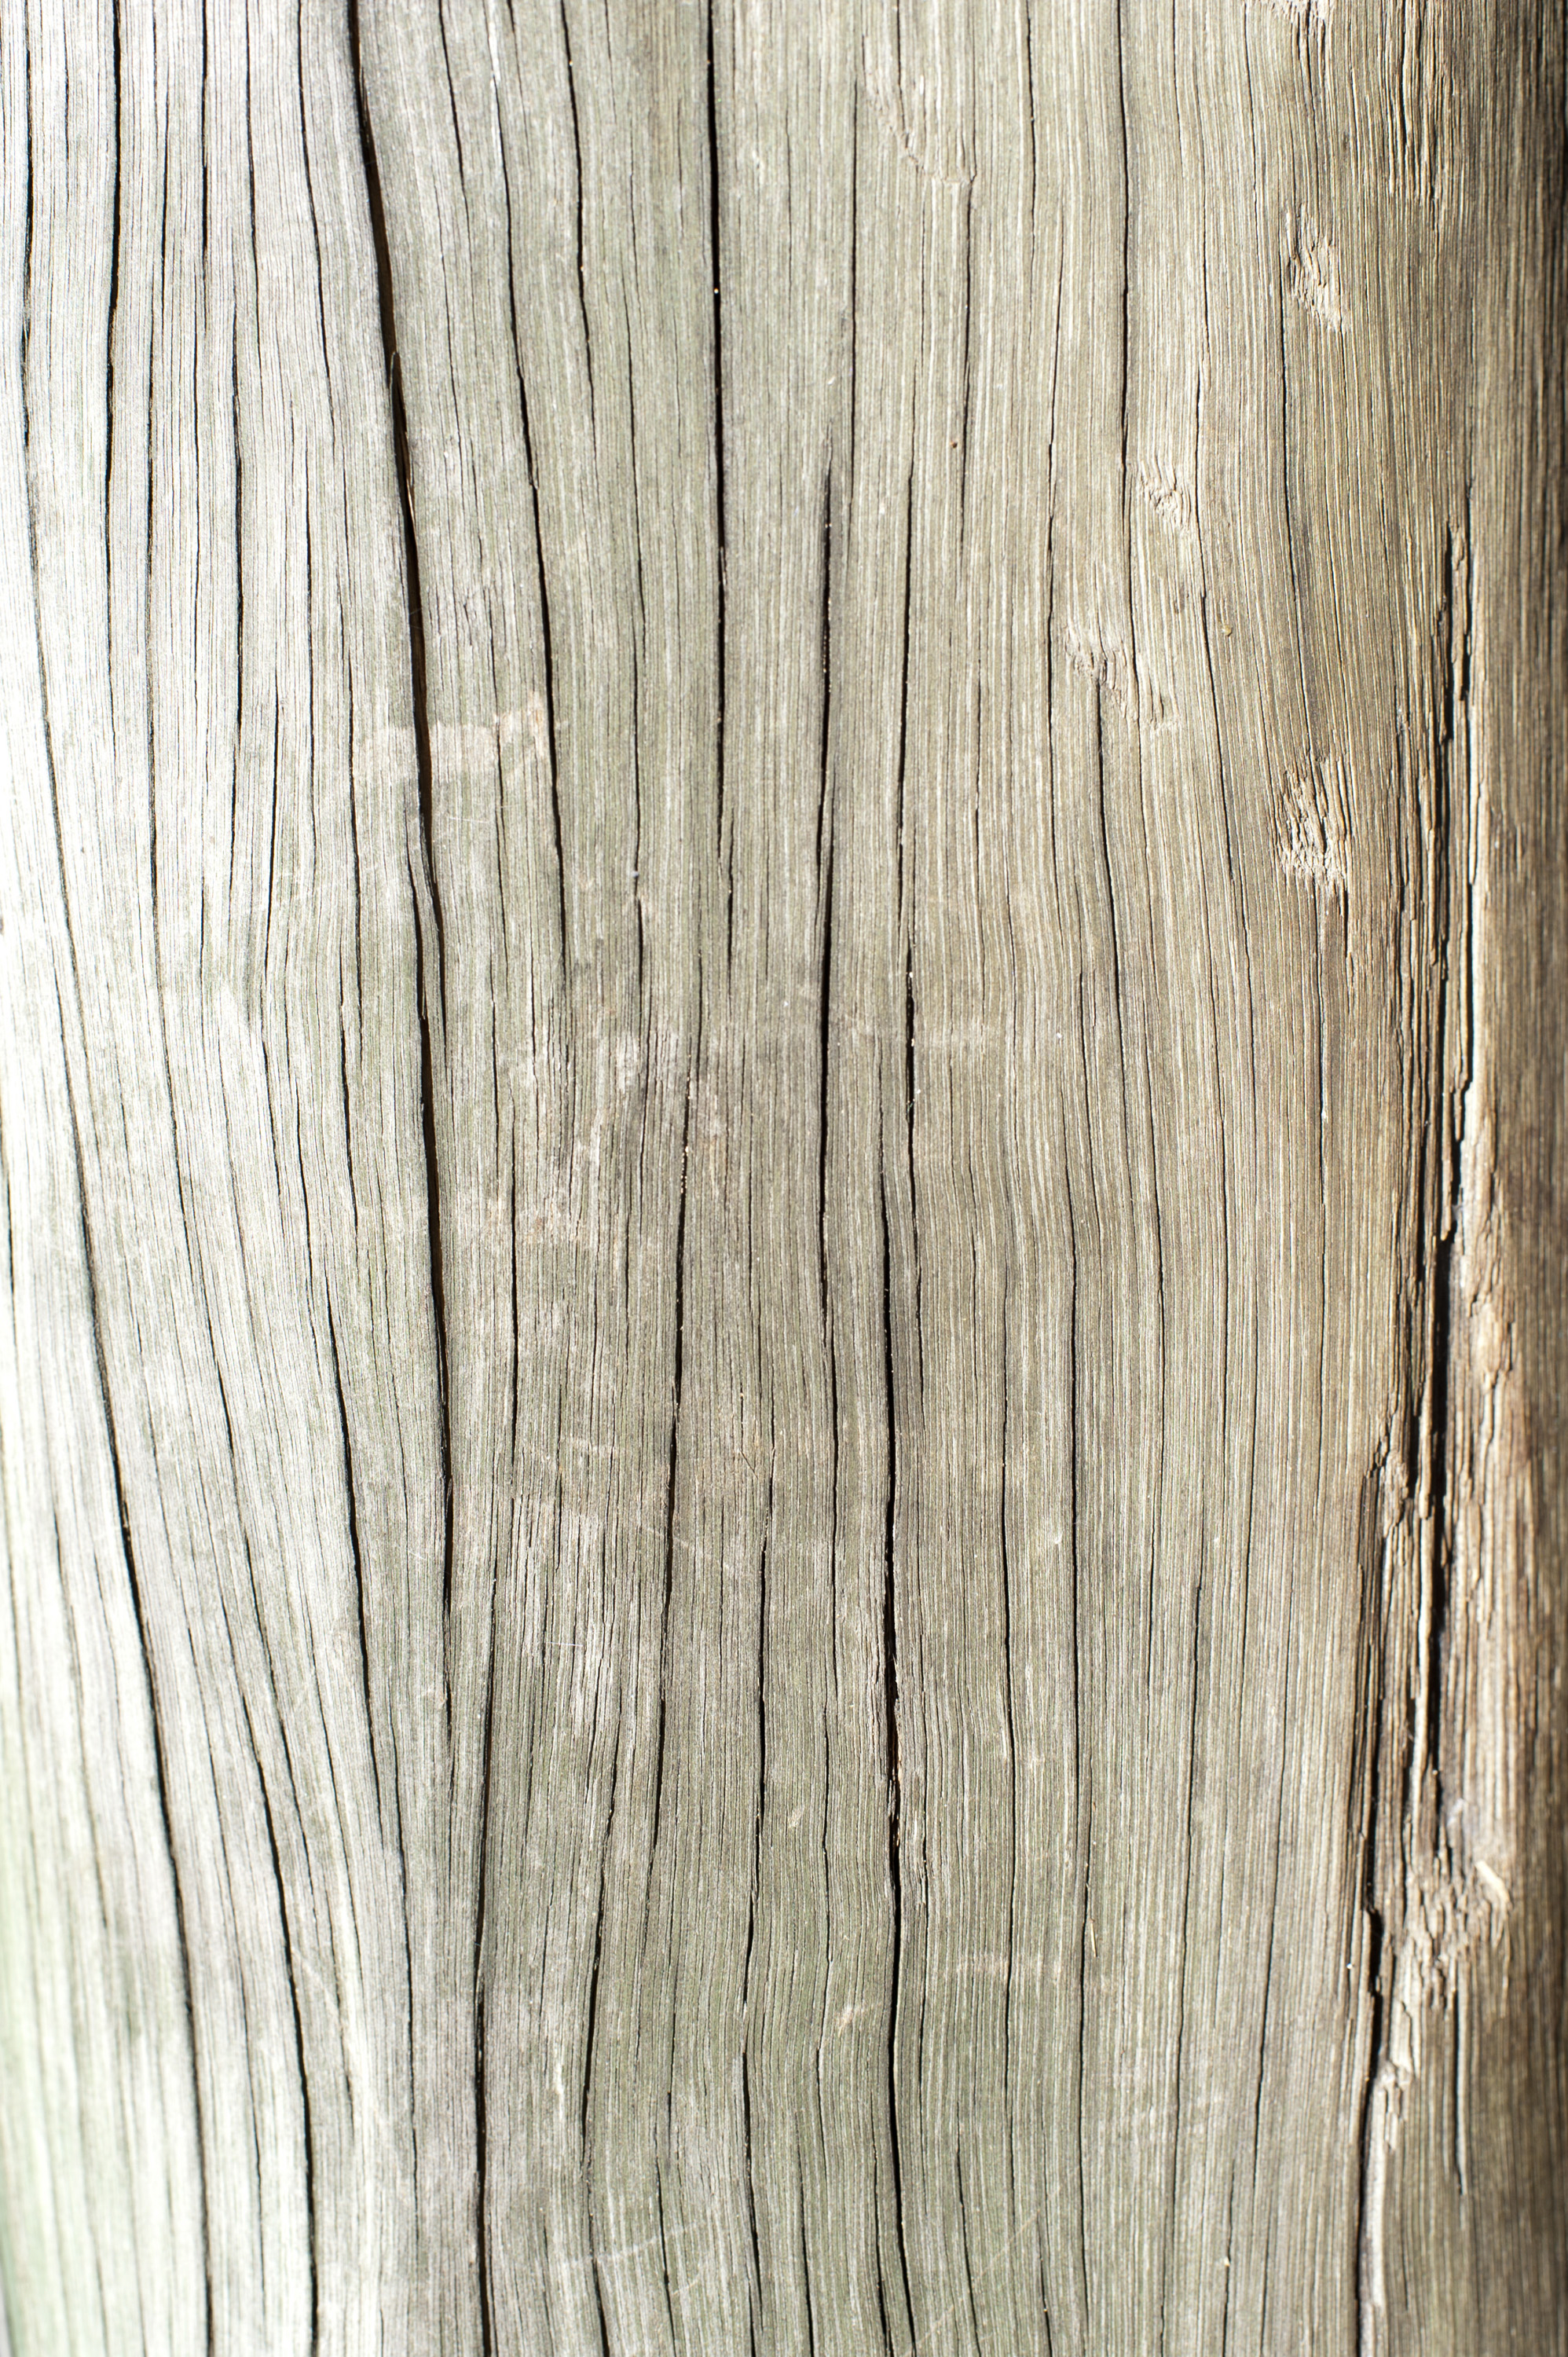 Wooden Post Texture picture wooden post texture. wood planks old texture. wood fence